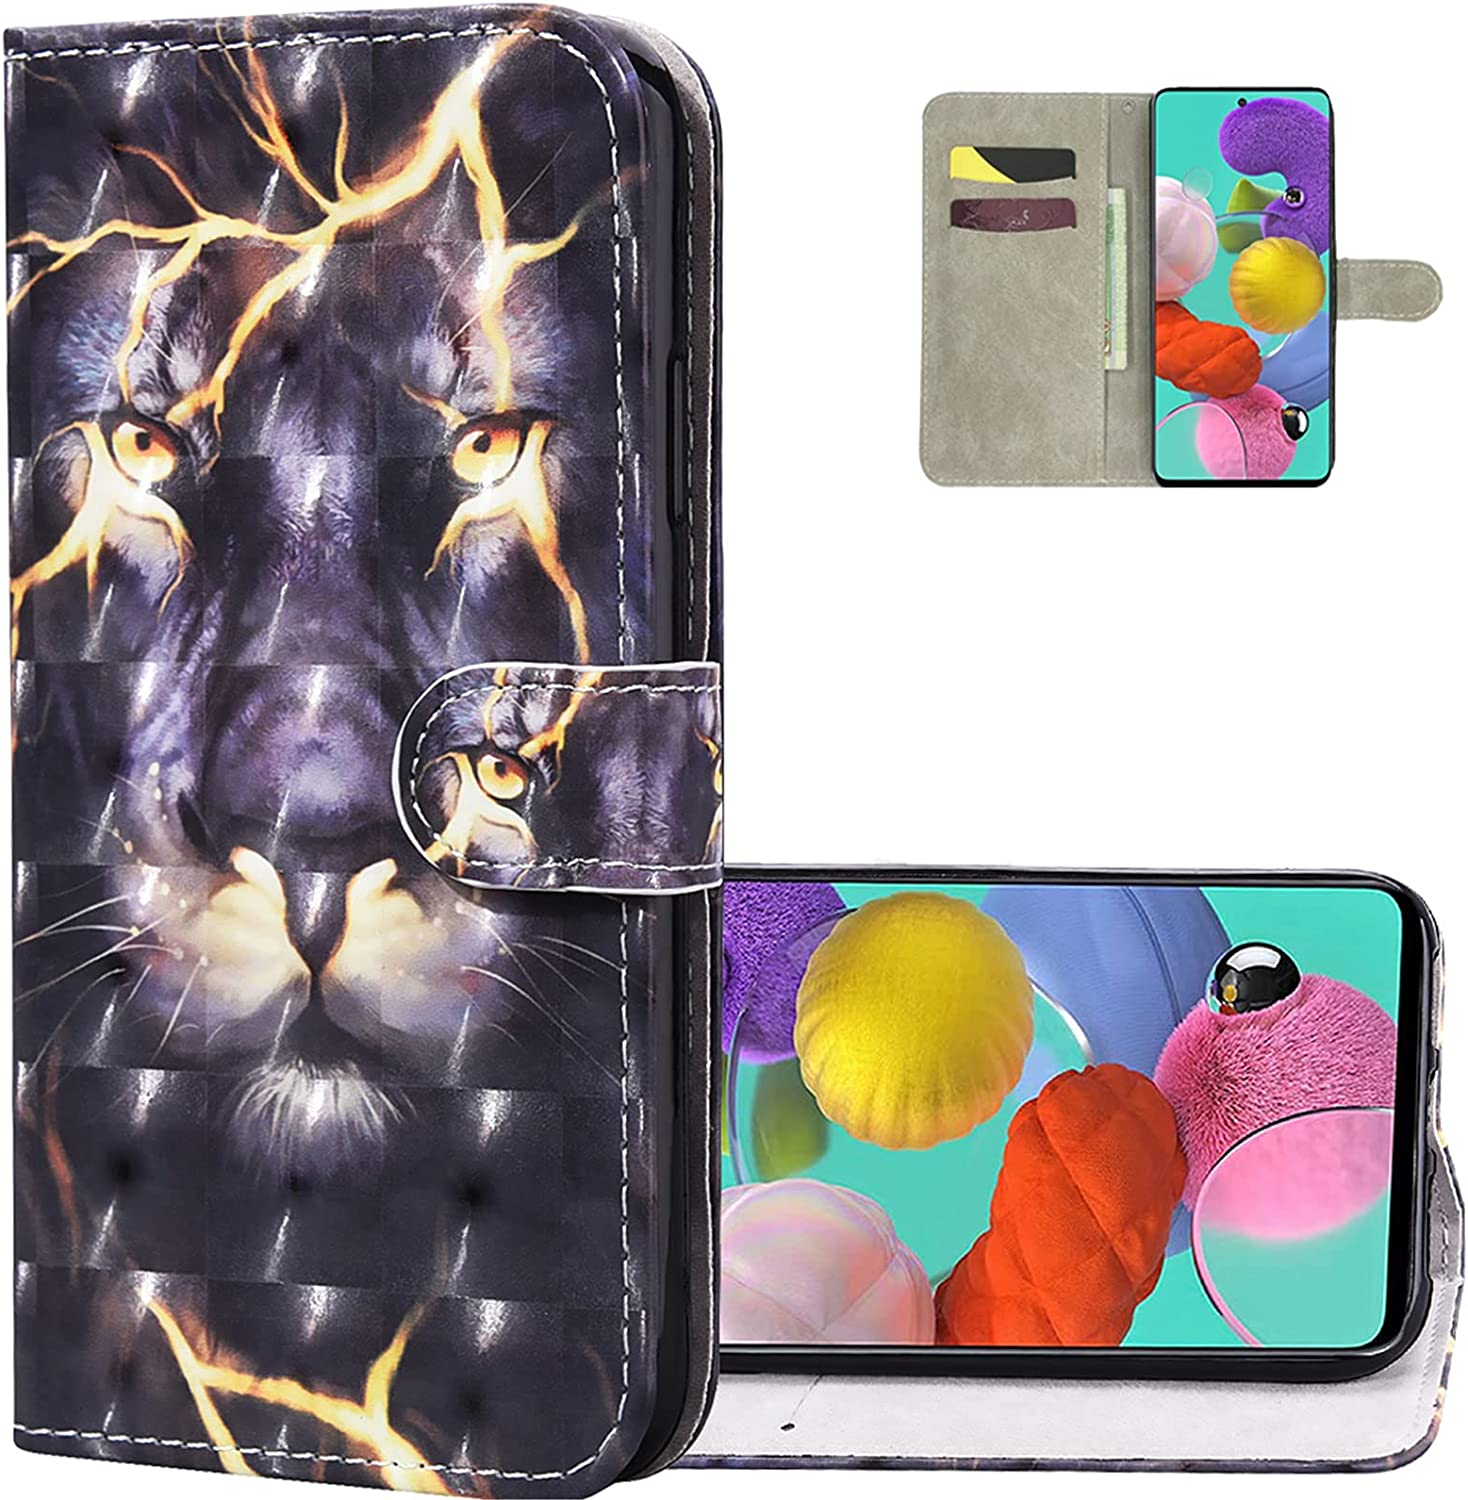 LEMAXELERS Samsung A42 5G Wallet Case 3D Creative Pattern Design Premium Soft PU Leather Flip Cover Case with Stand Magnetic Card Holder Shockproof Case for Samsung Galaxy A42 5G Thunder Lion CYY